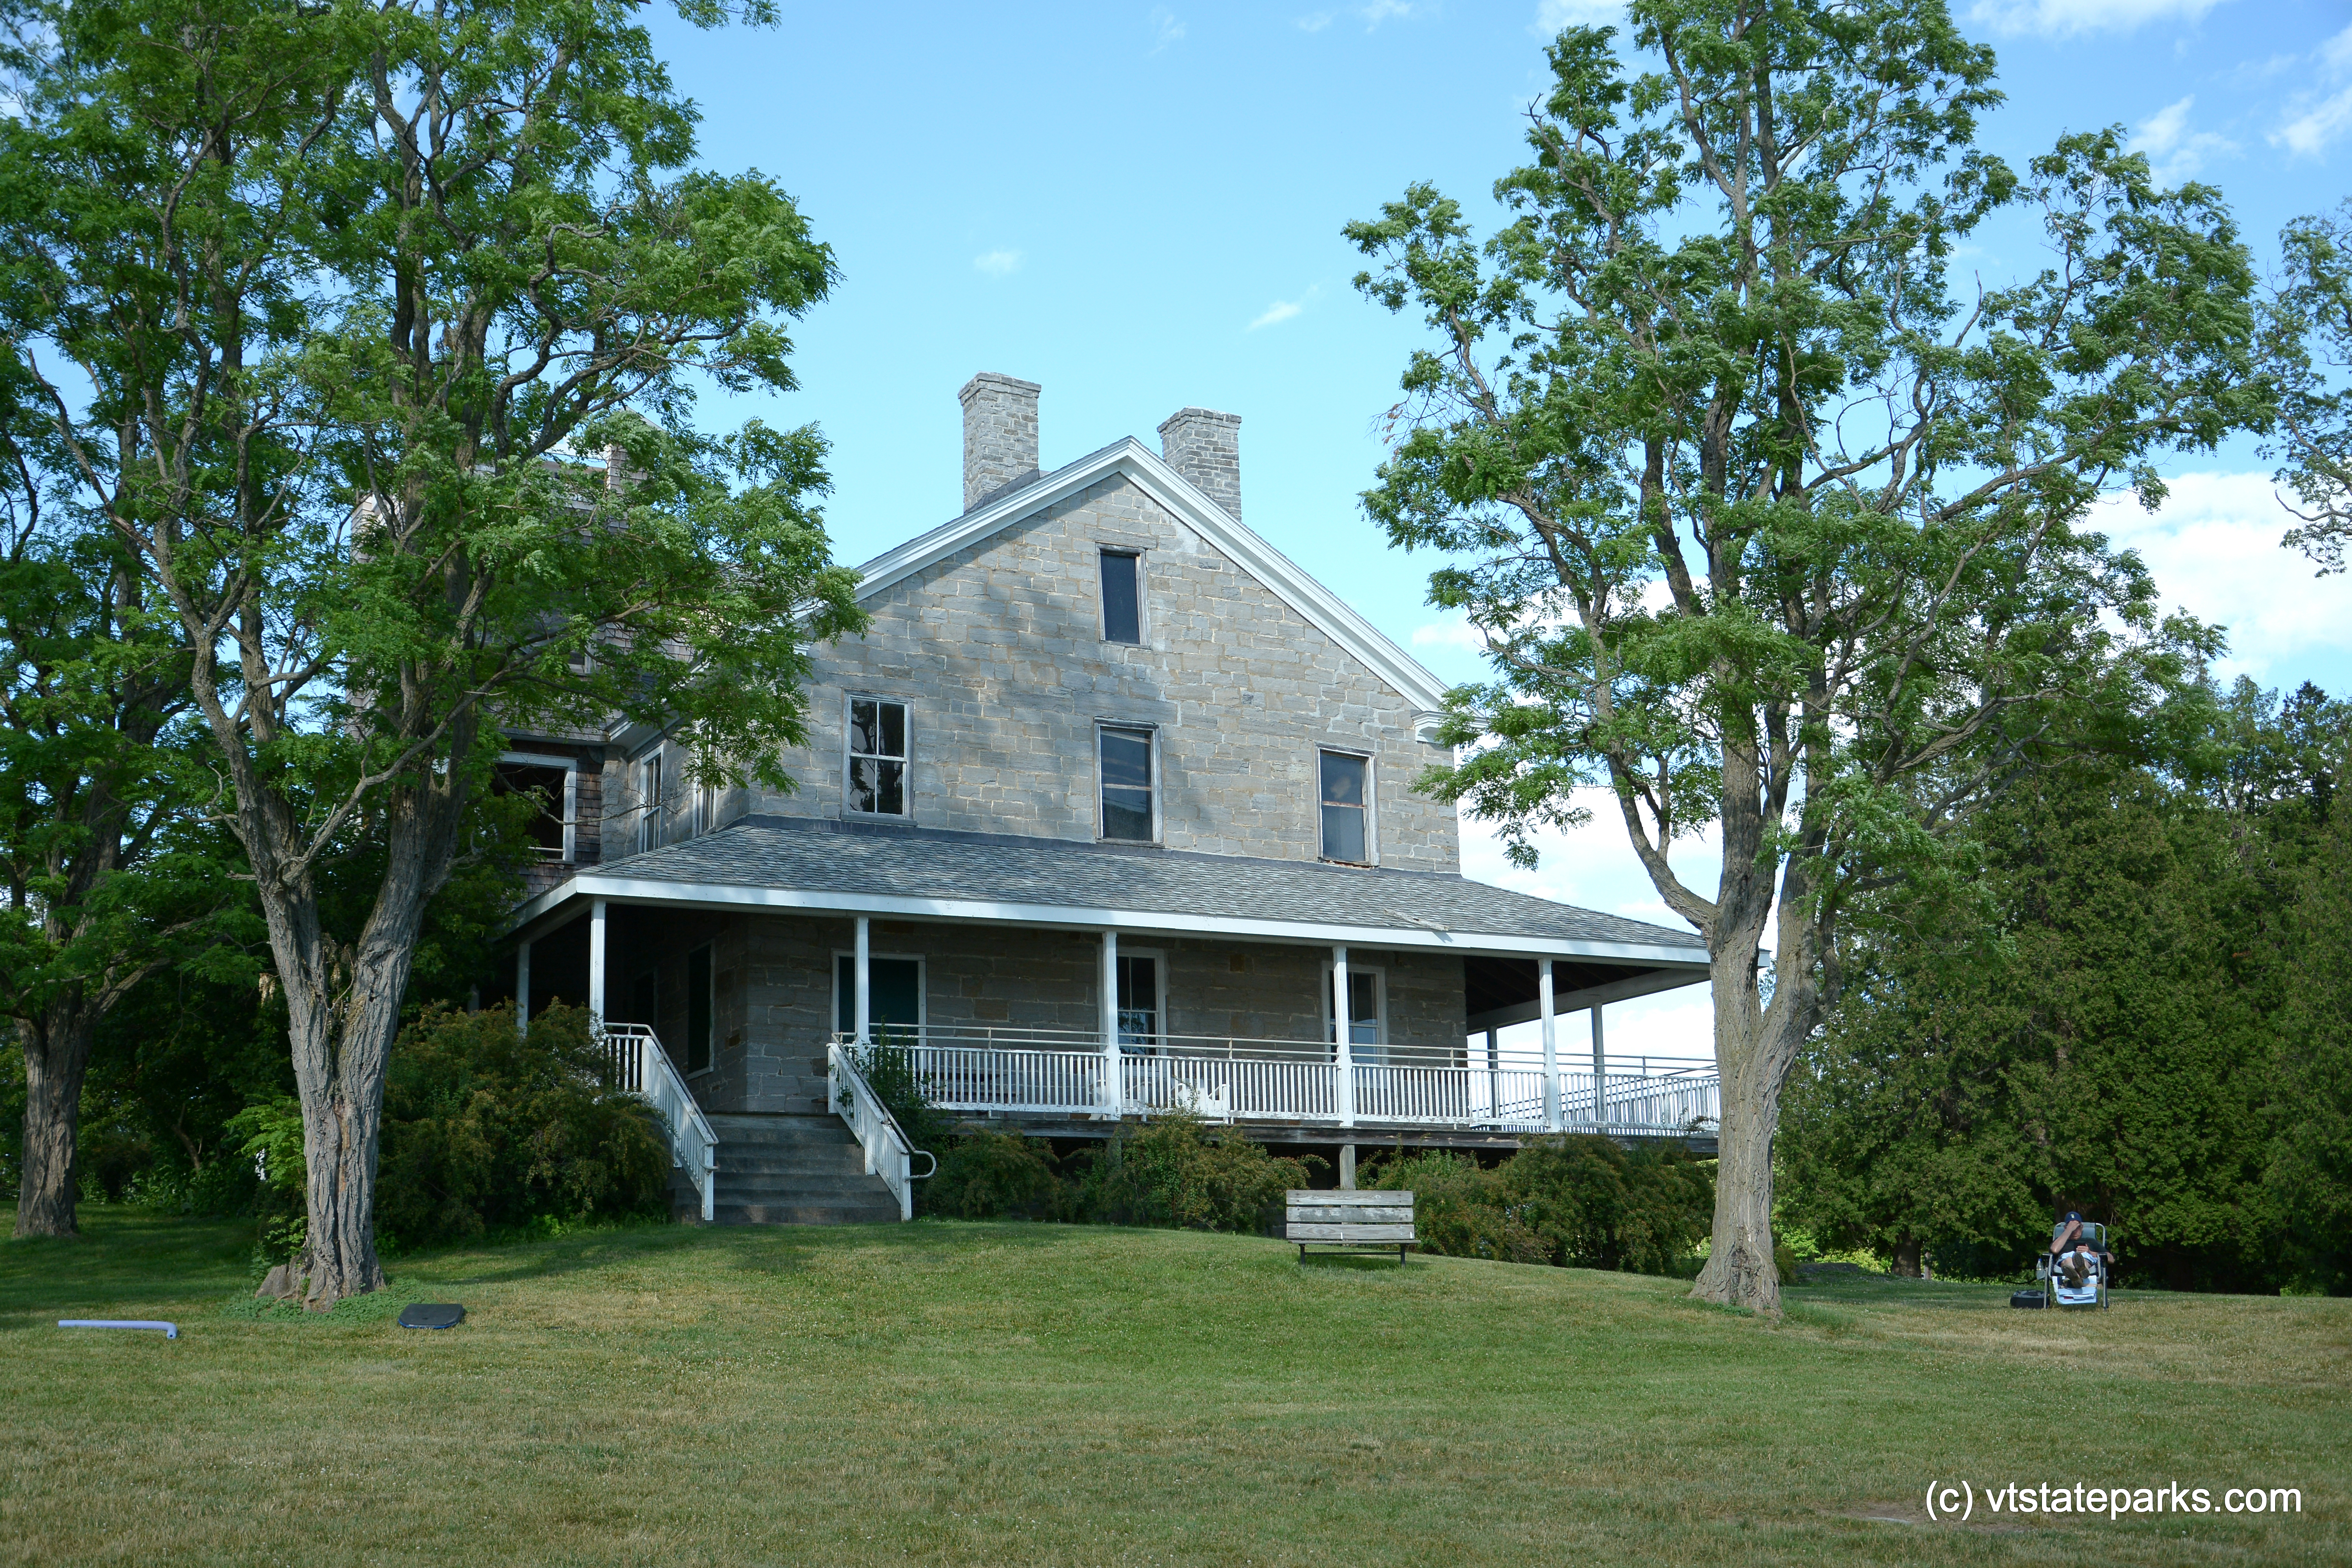 Photo: Exterior view of the Hawley House at Kingsland Bay State Park by Gary Bouchard